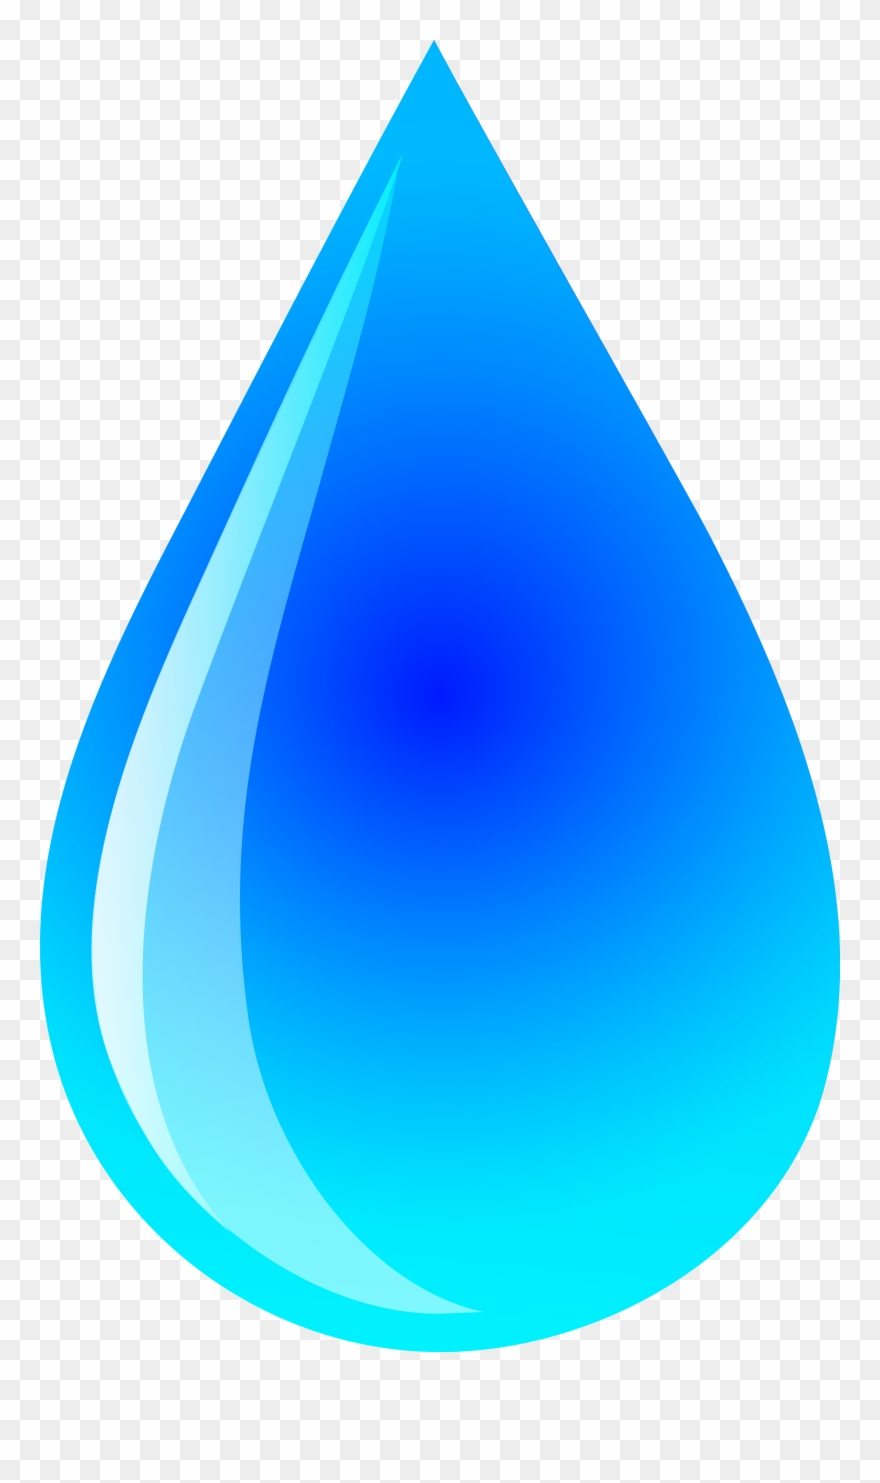 15 Water Drop Clip Art.